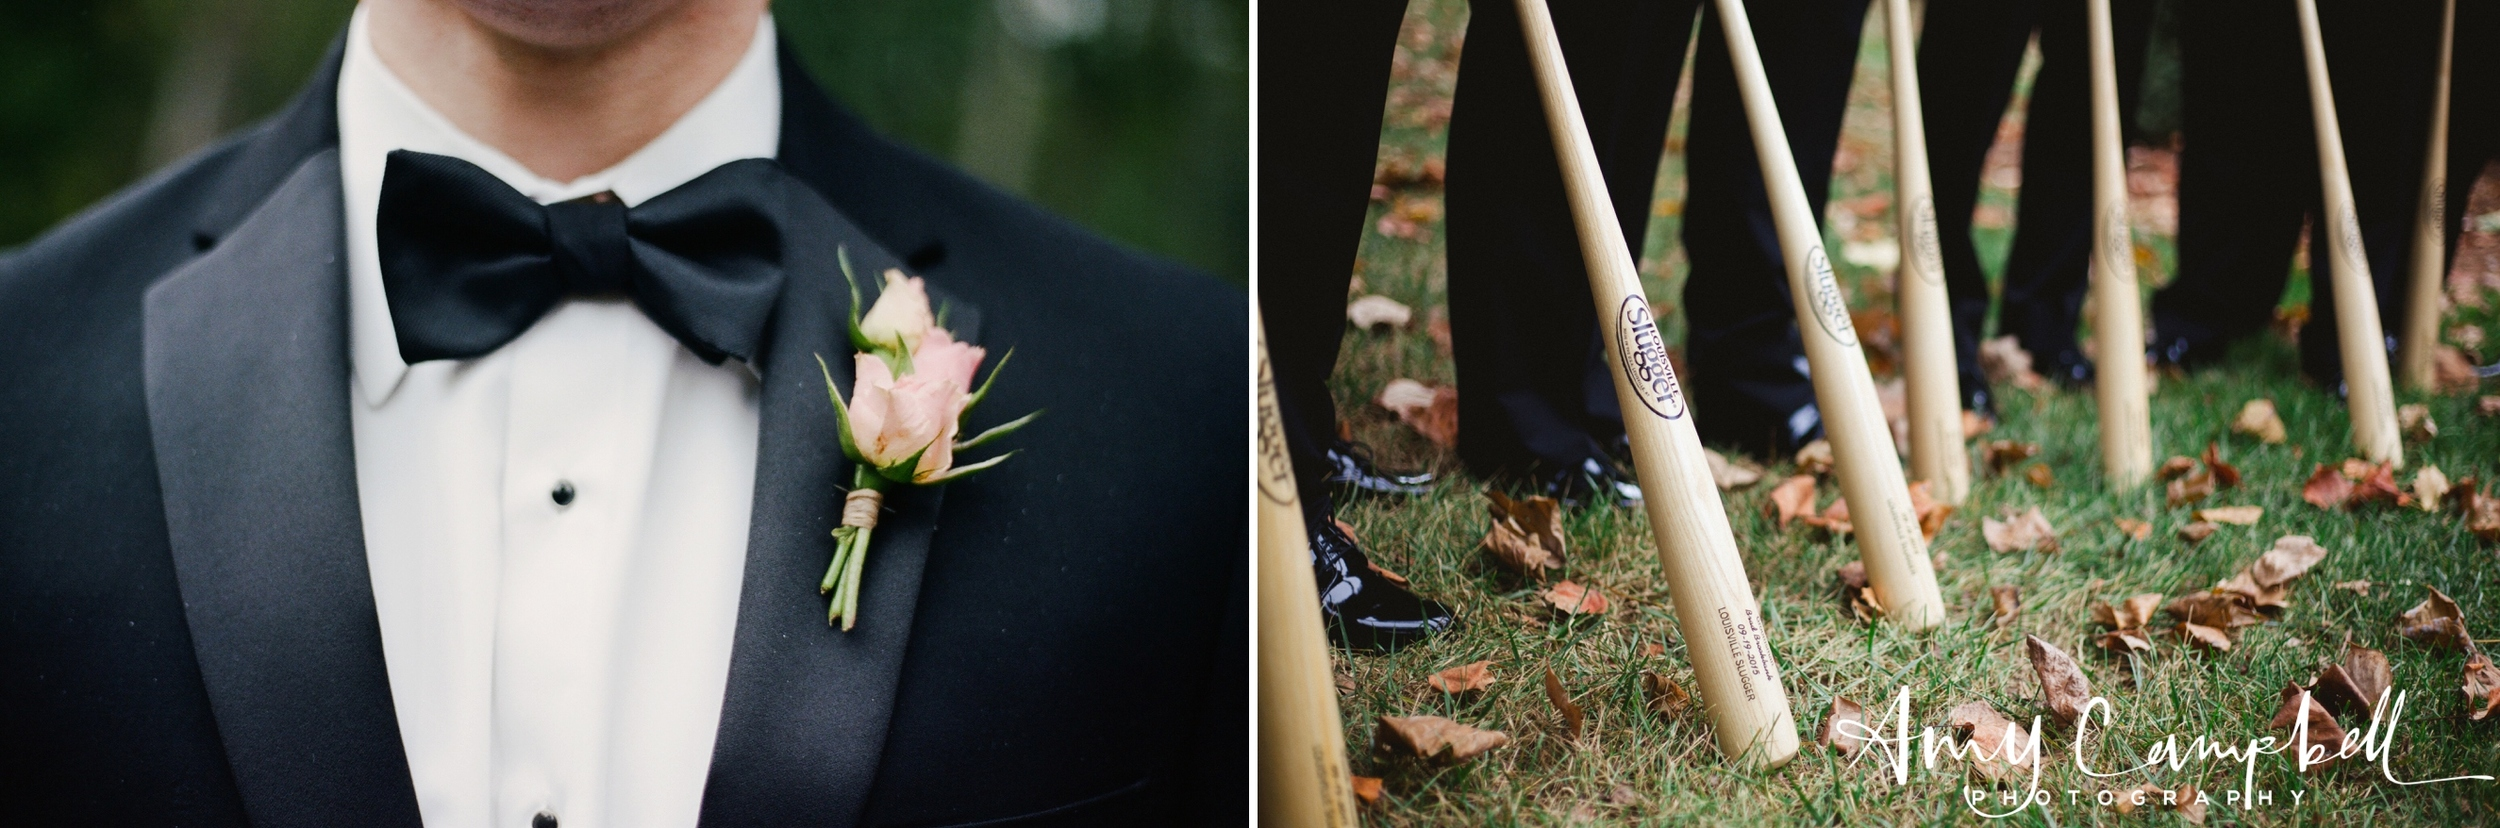 chelseamike_wedss_pics_amycampbellphotography_030.jpg